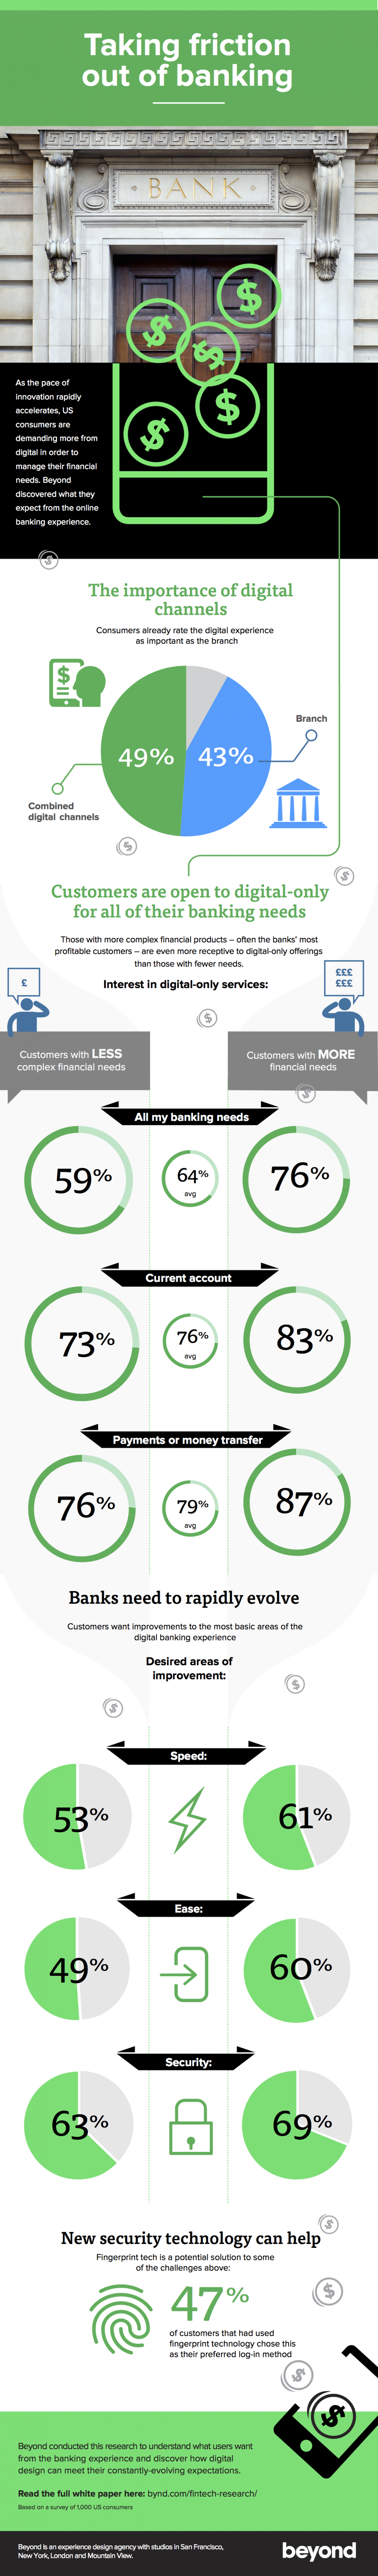 Taking friction out of banking Infographic